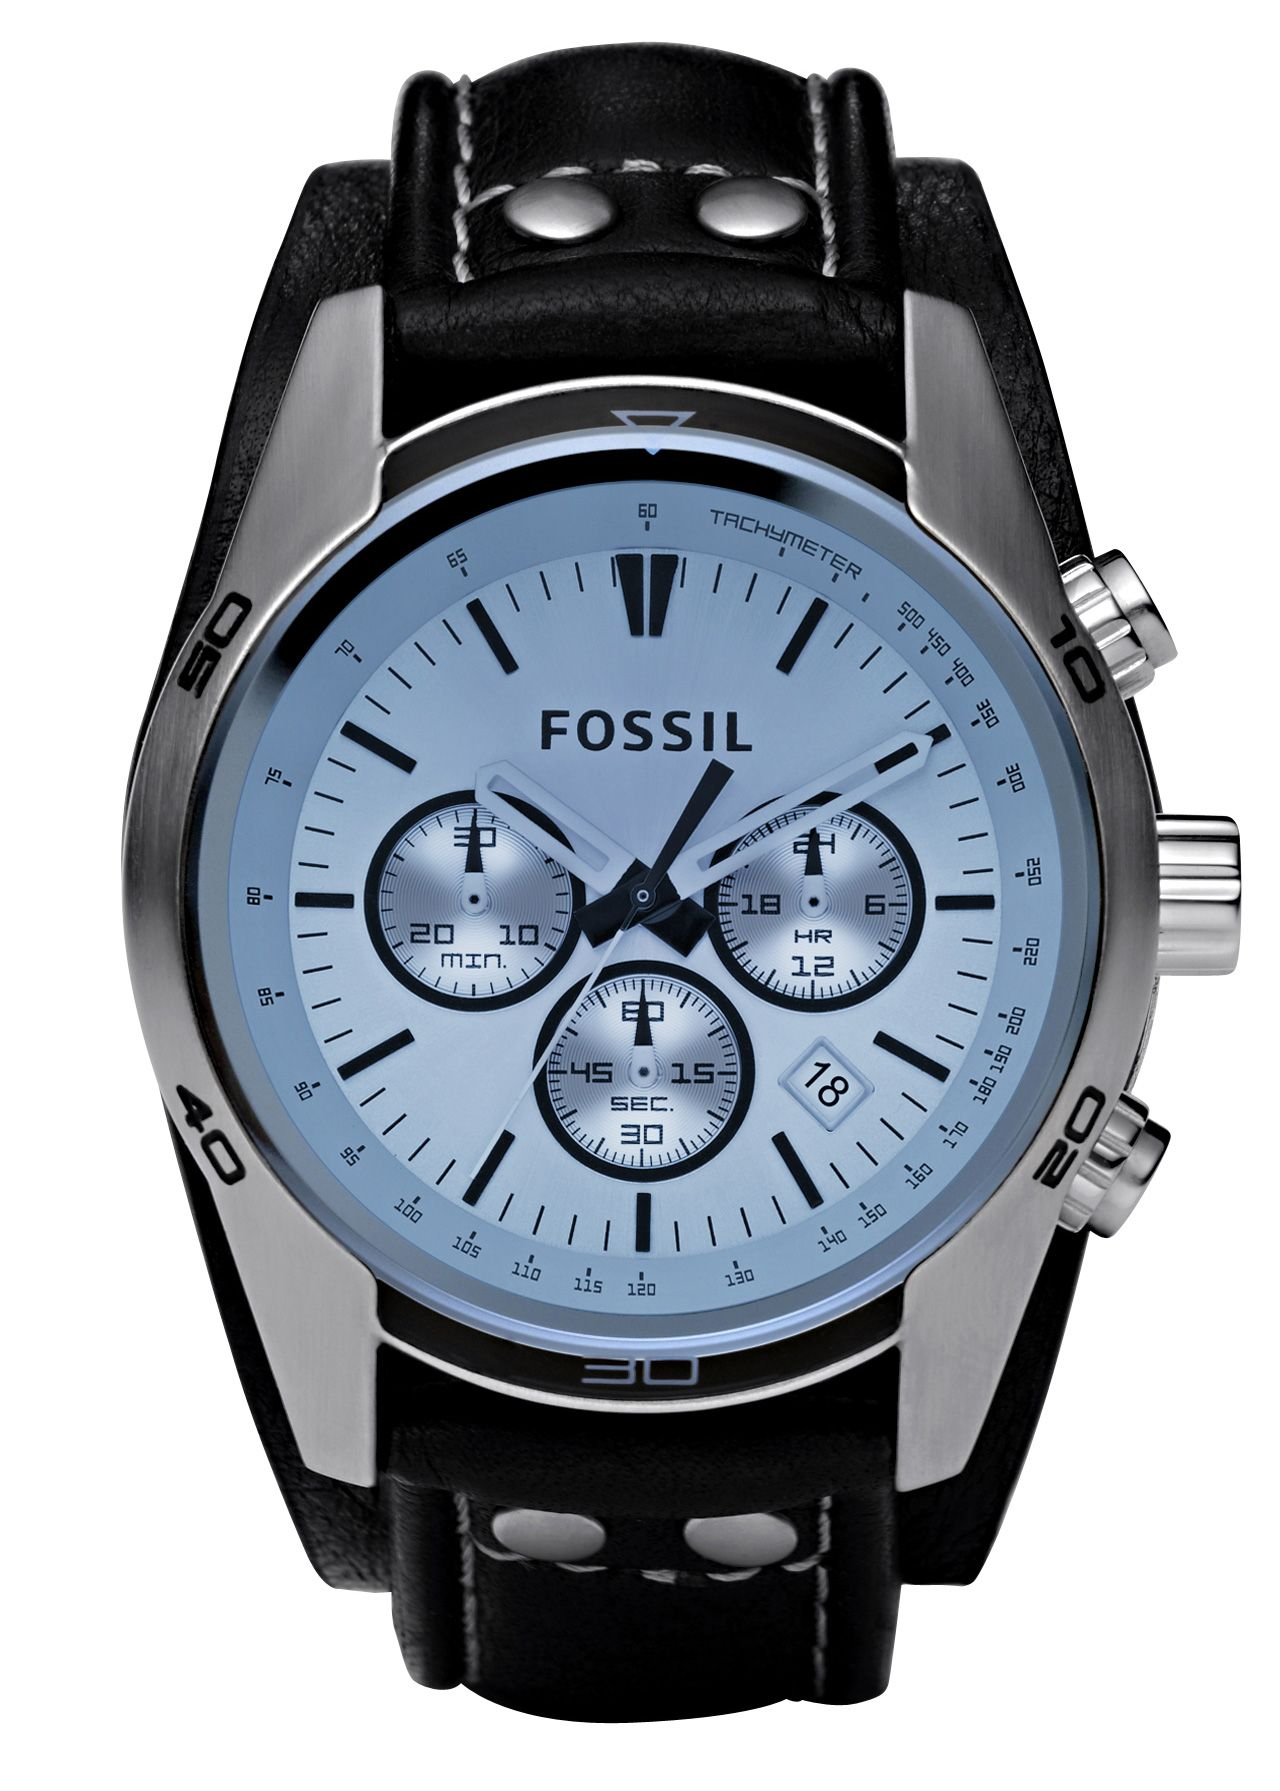 5a5ac1887b46 Fossil Sport Cuff Chronograph Leather Watch – Black CH2564 £105.00 Go  casual with this stainless